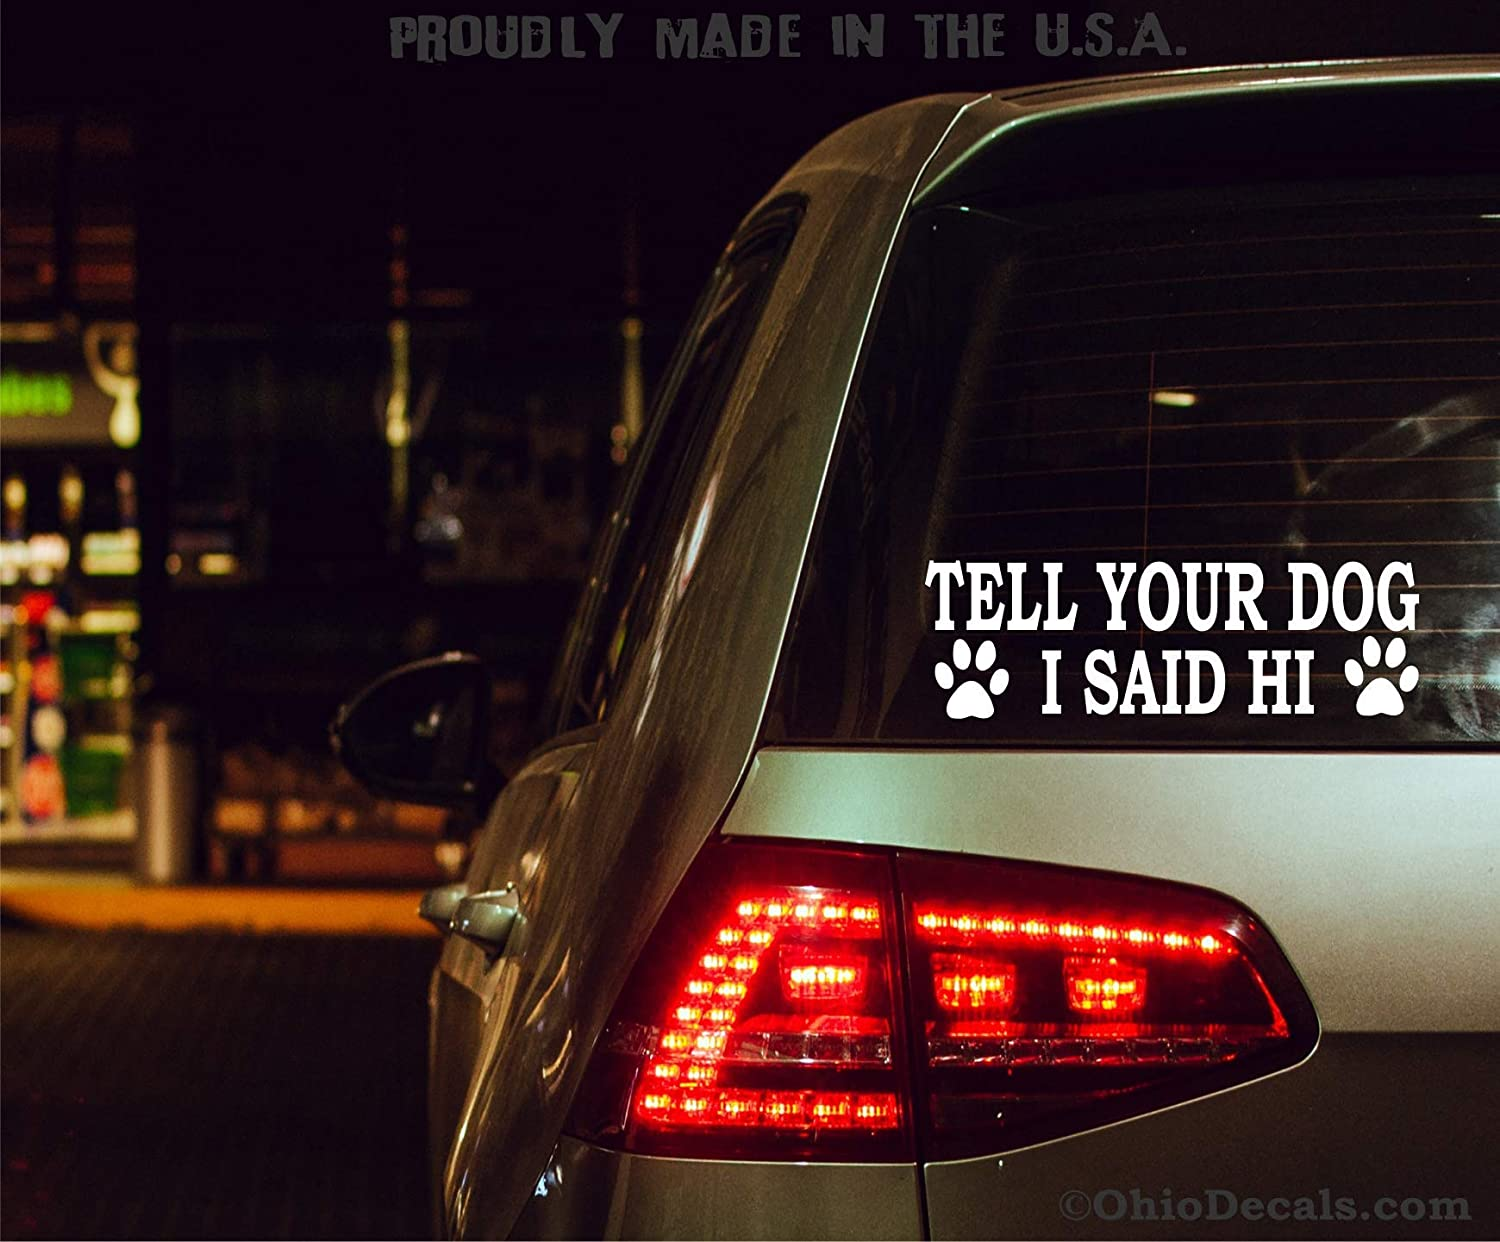 OhioDecals.com Tell Your Dog I Said Hi Decal//Funny Pets Sticker for Bumper or Car Window